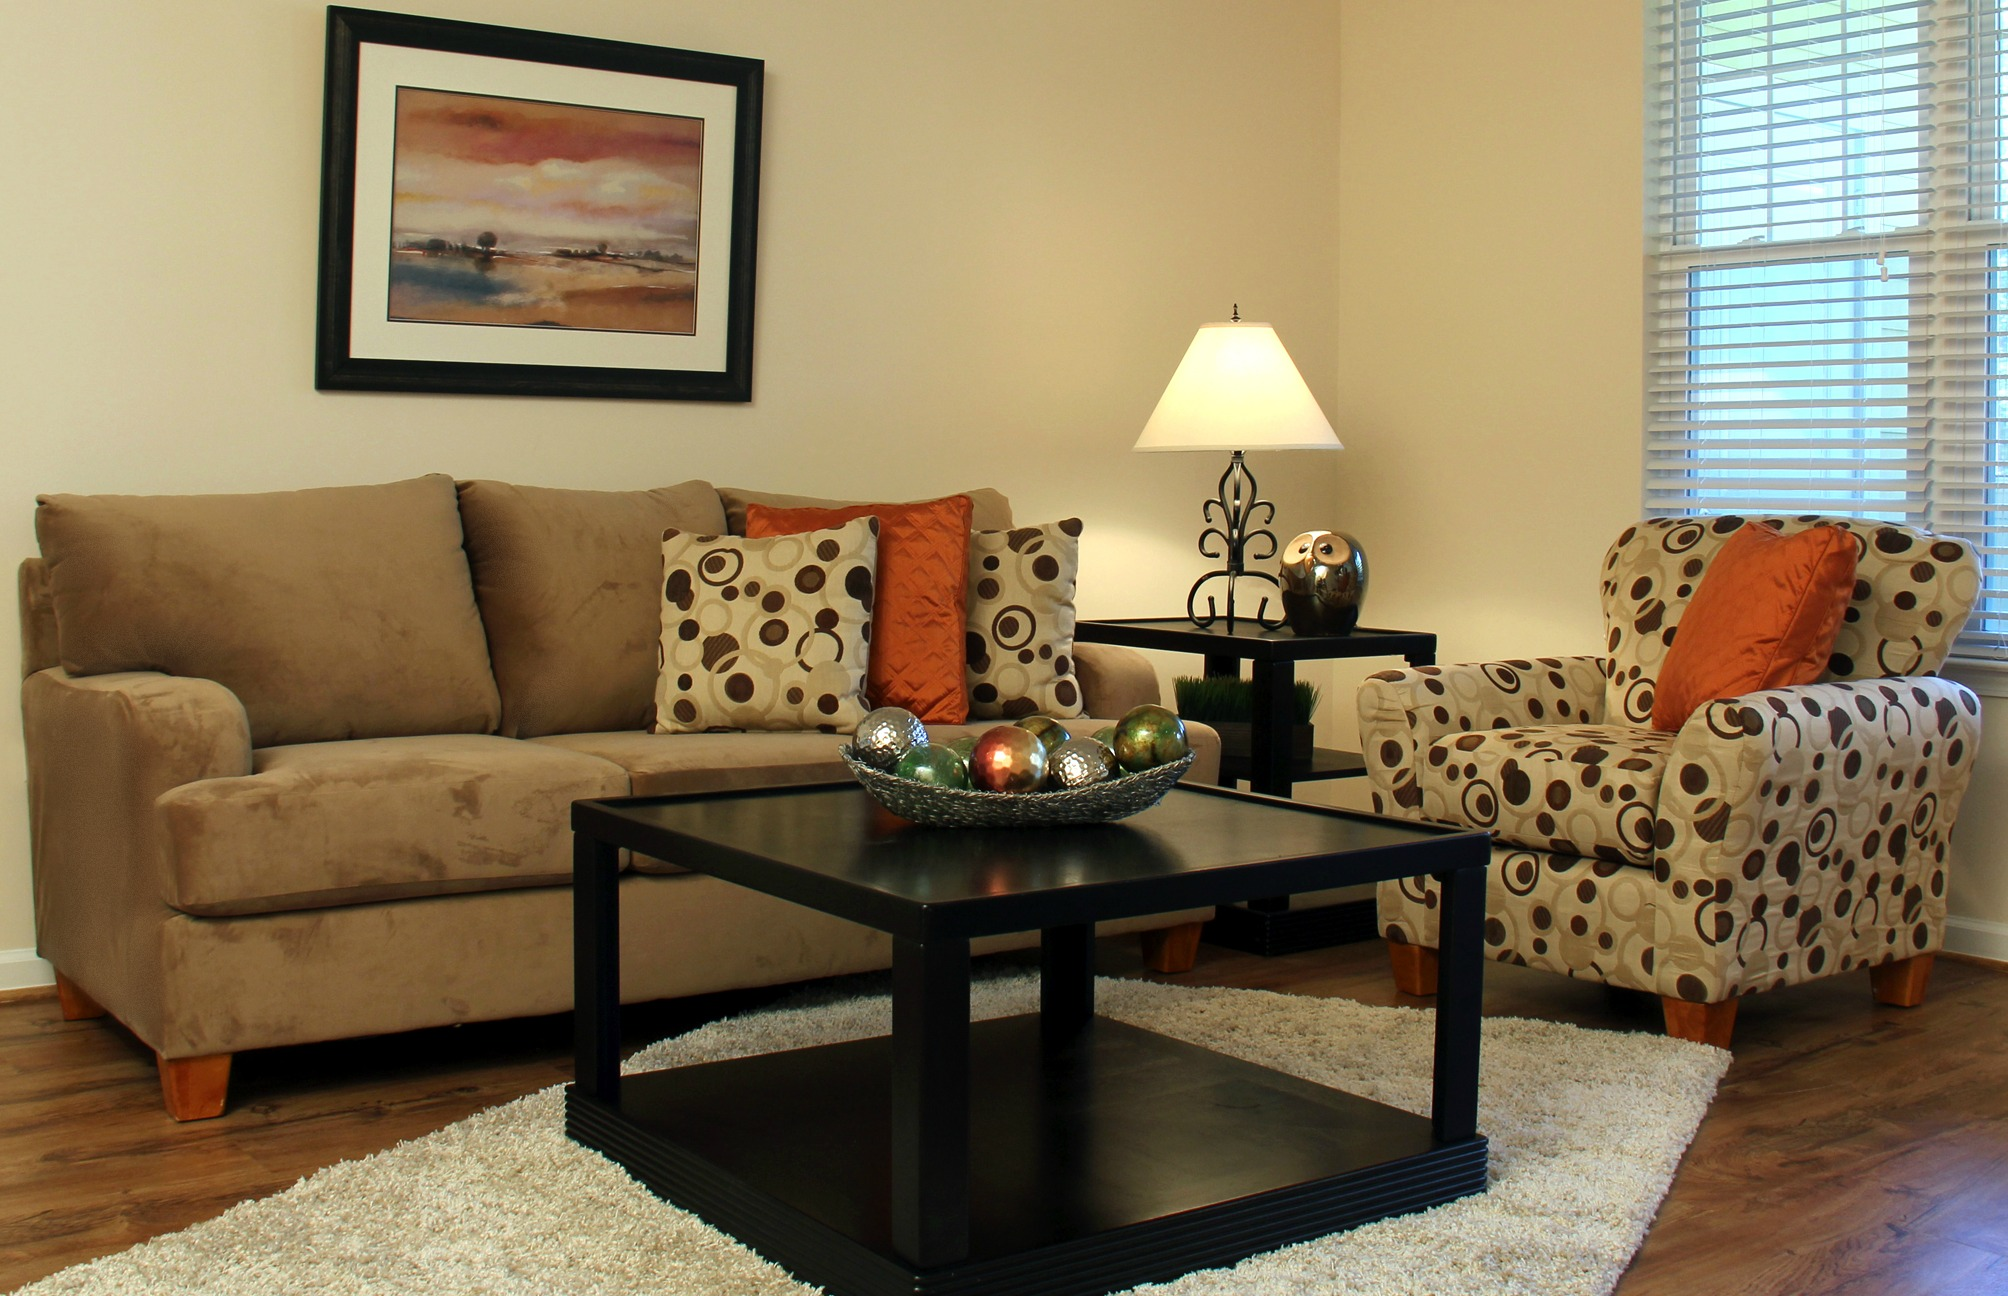 Acrs Your Corporate Housing Concierge Expertly